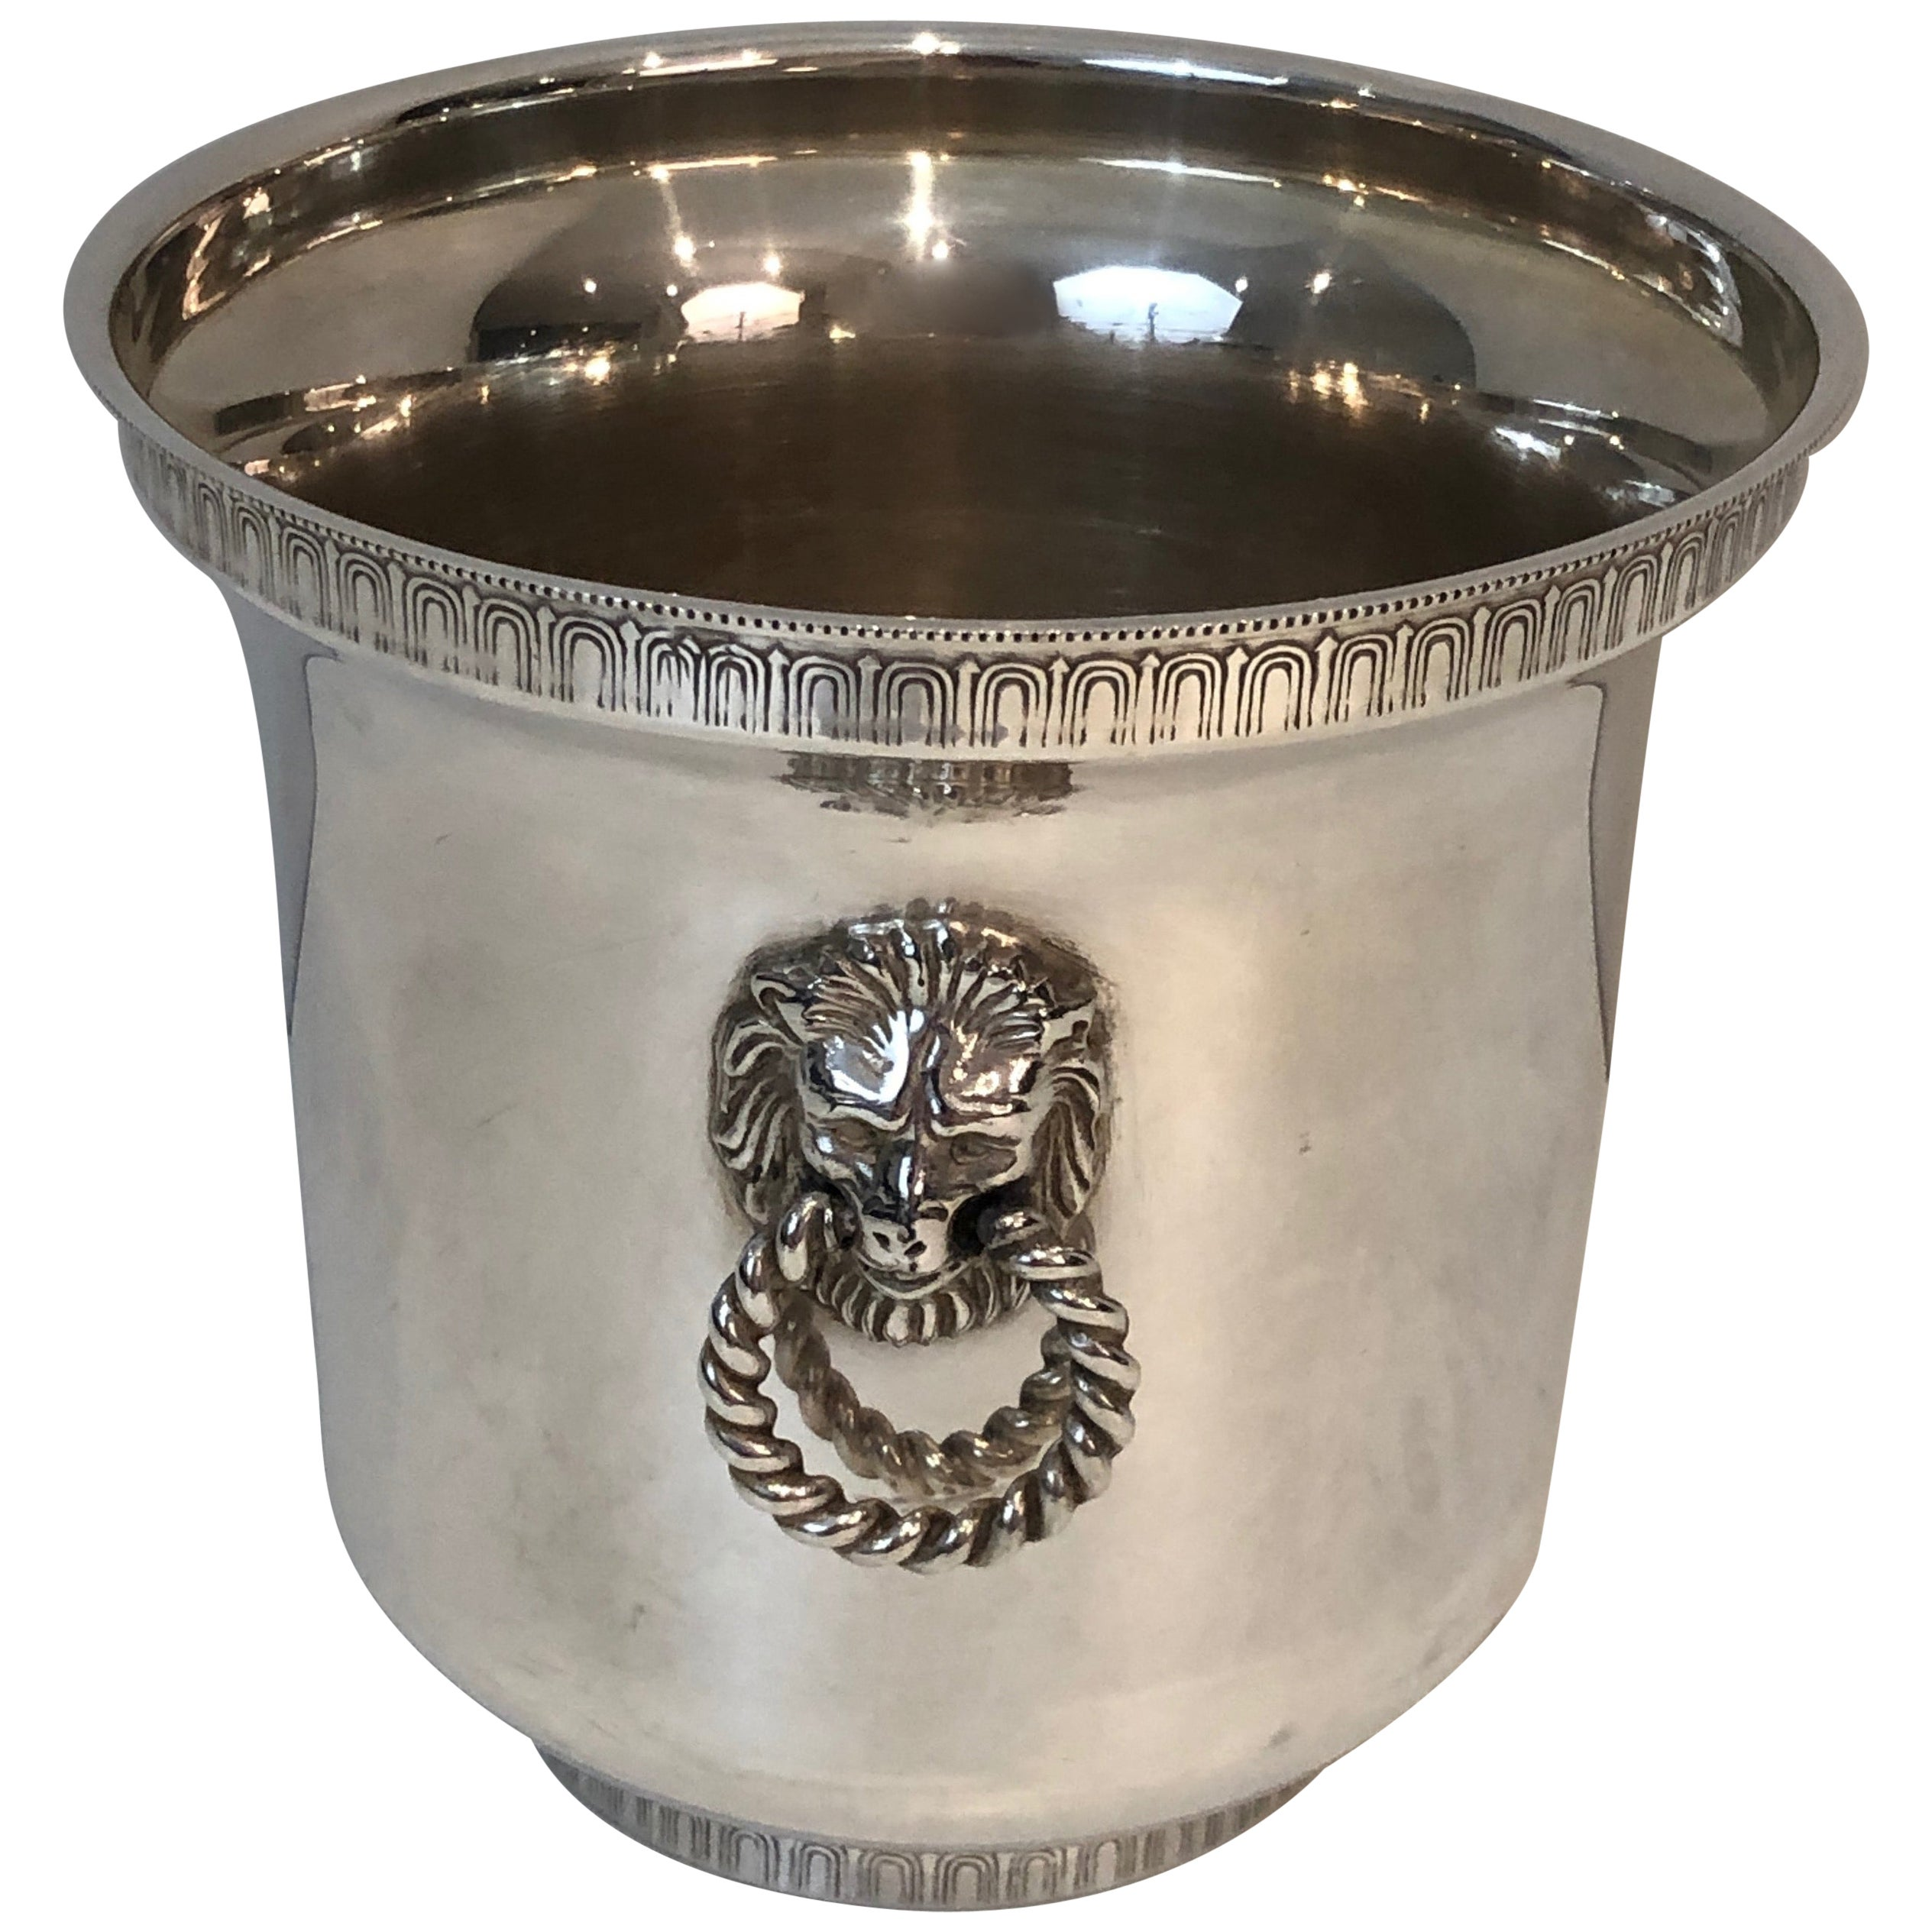 Silver Plated Champagne Bucket with Lion Heads Handles, French, circa 1930